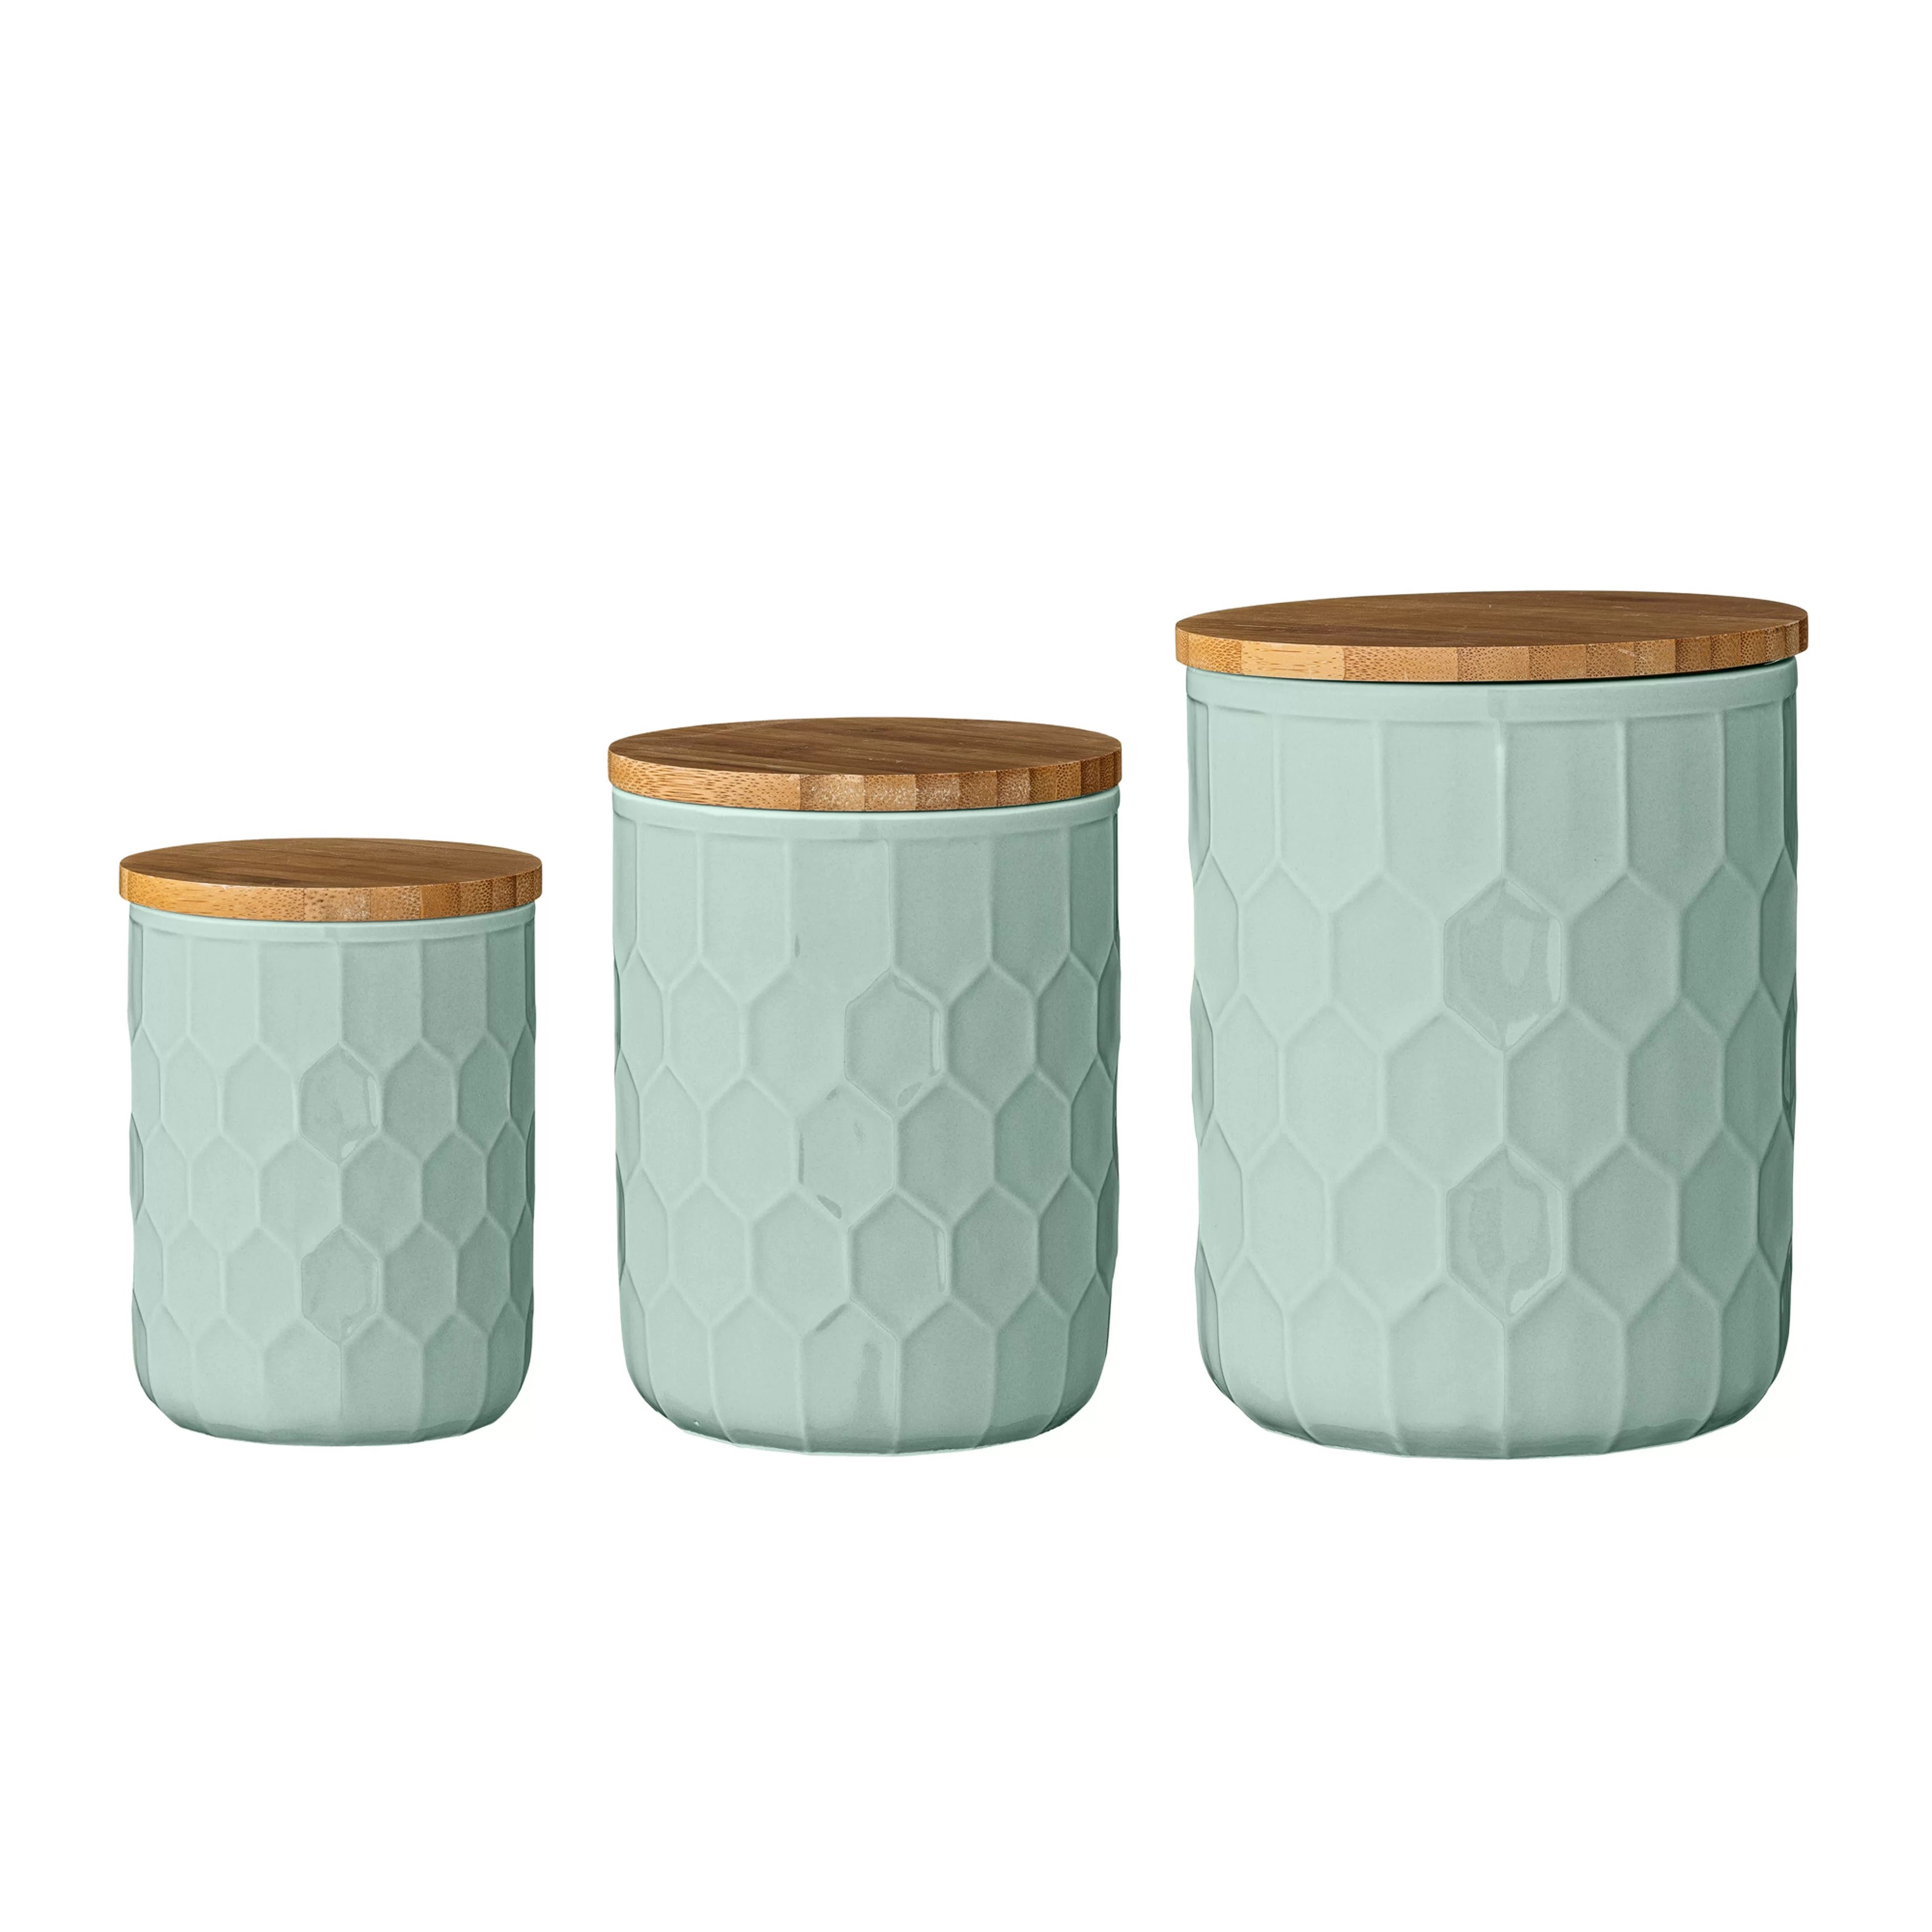 Small Ceramic Jars With Lids Mint Pantry 3 Piece Ceramic Jar With Bamboo Lid Set